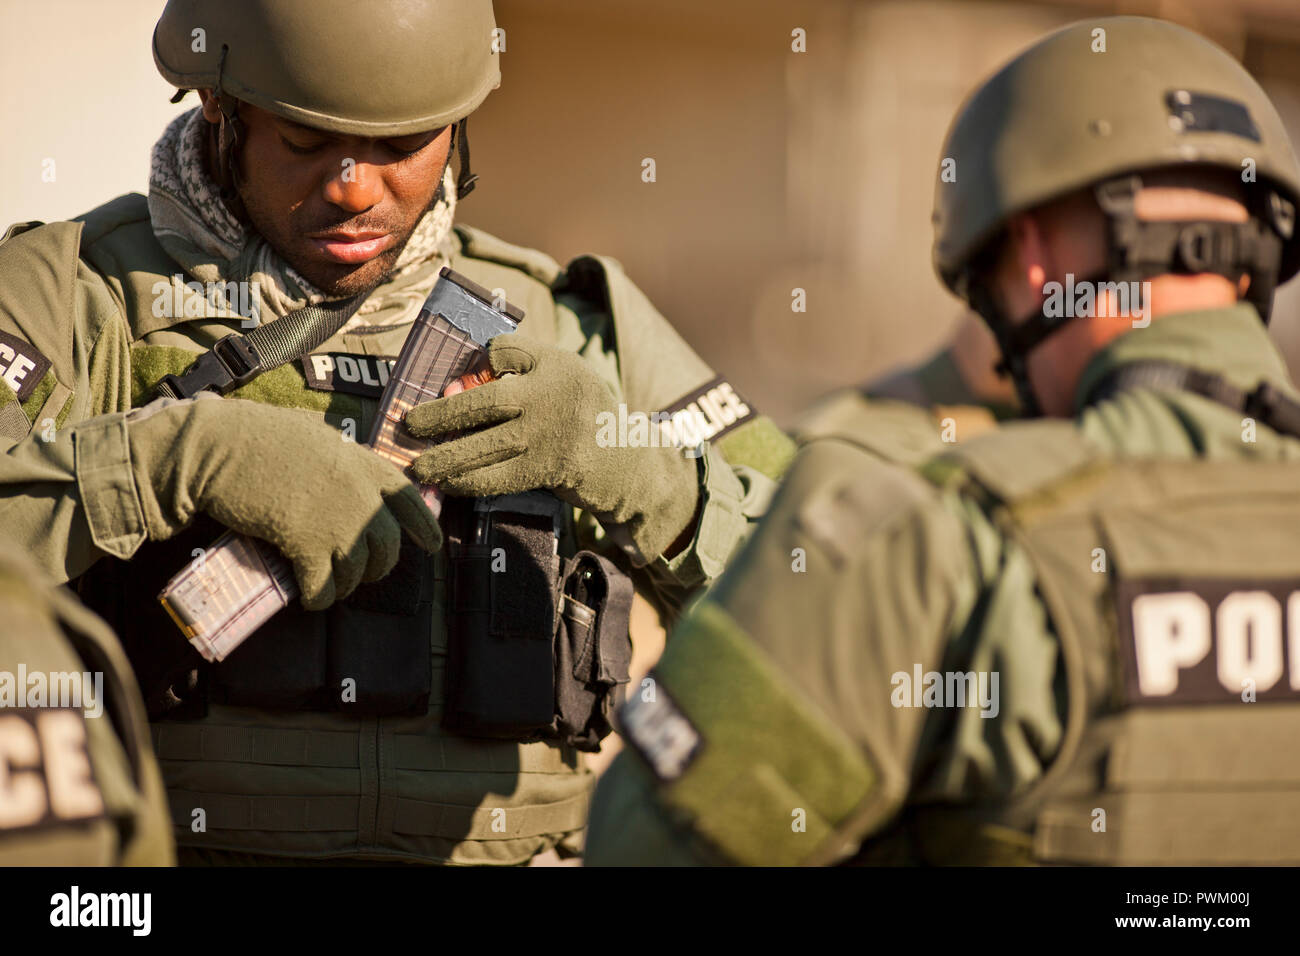 Two police officers at a training facility. - Stock Image